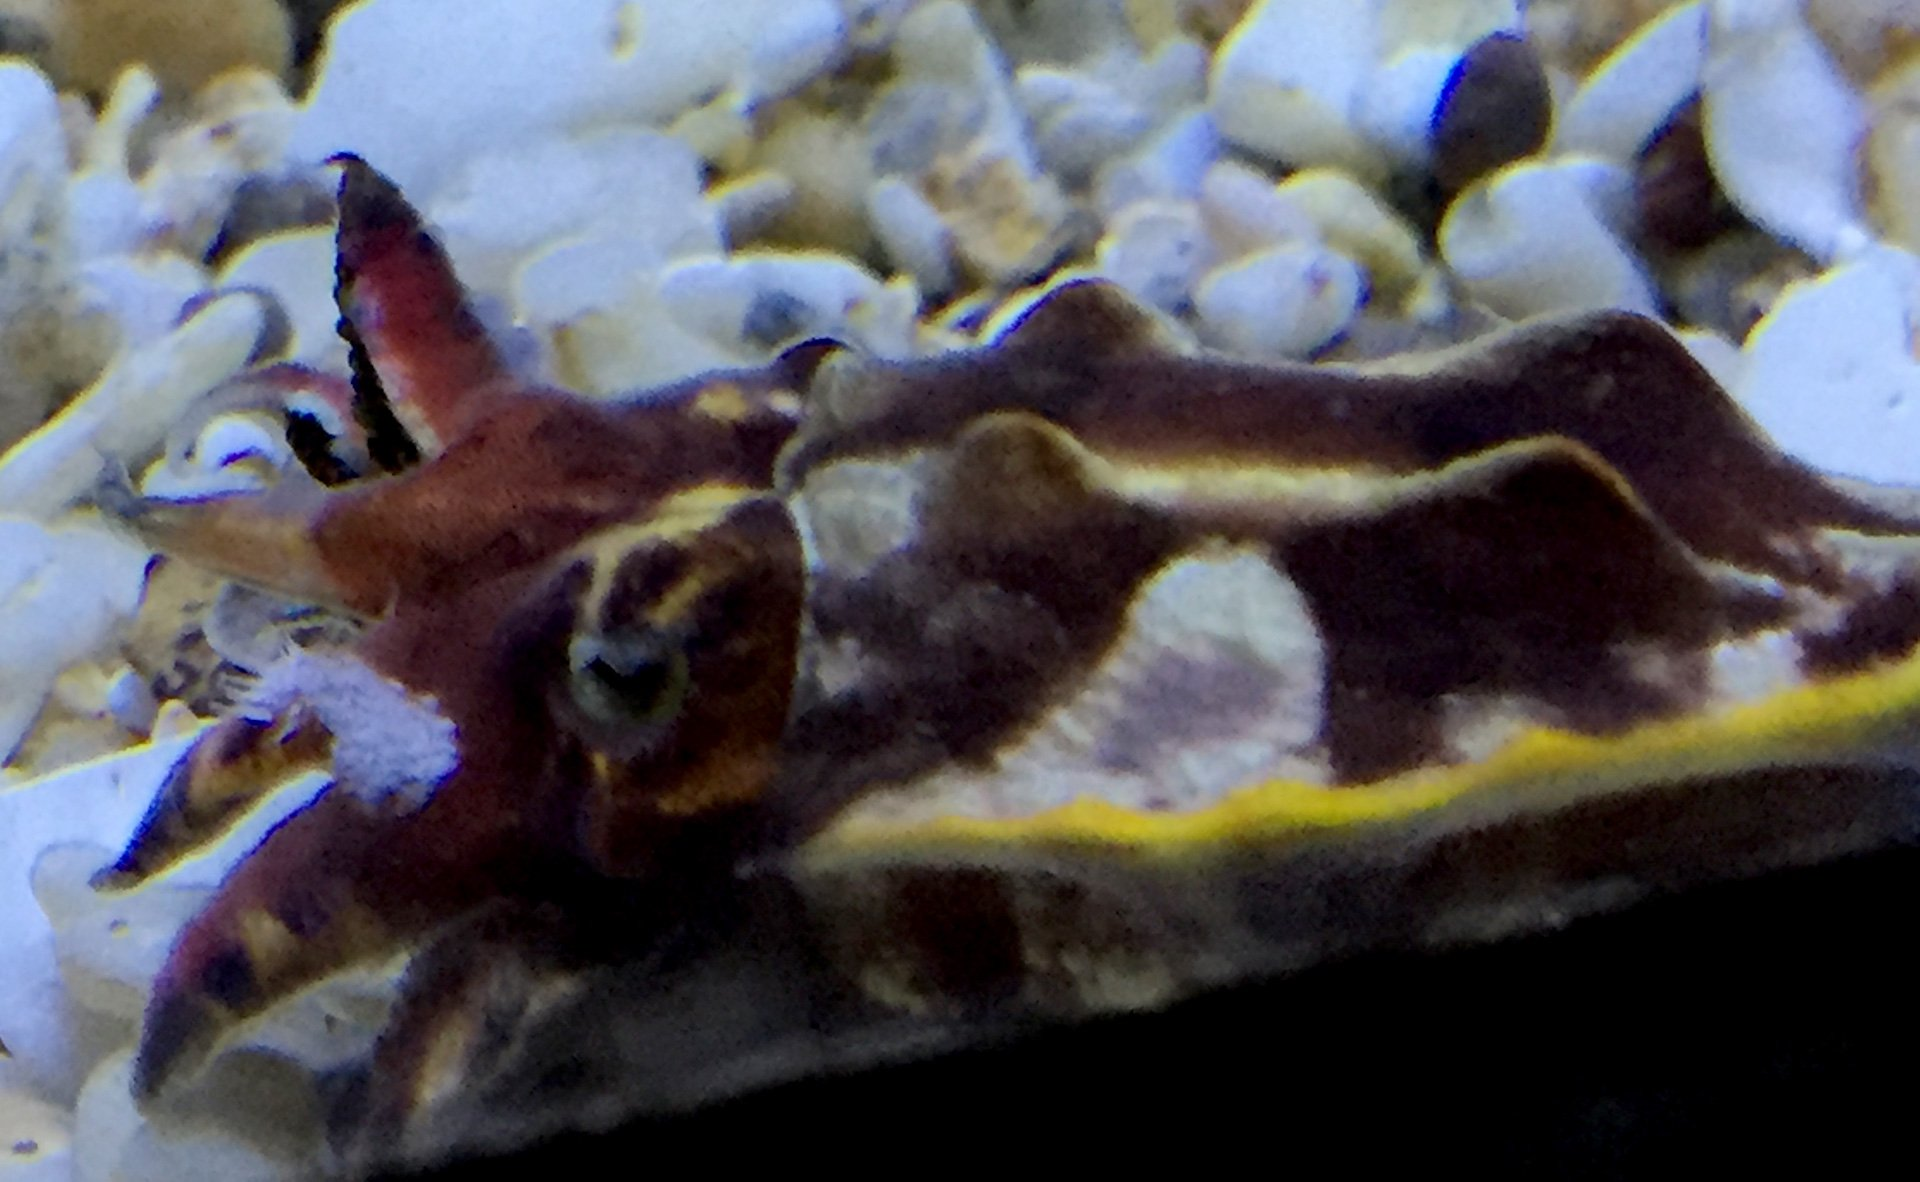 Cuttlefish are best seen in motion